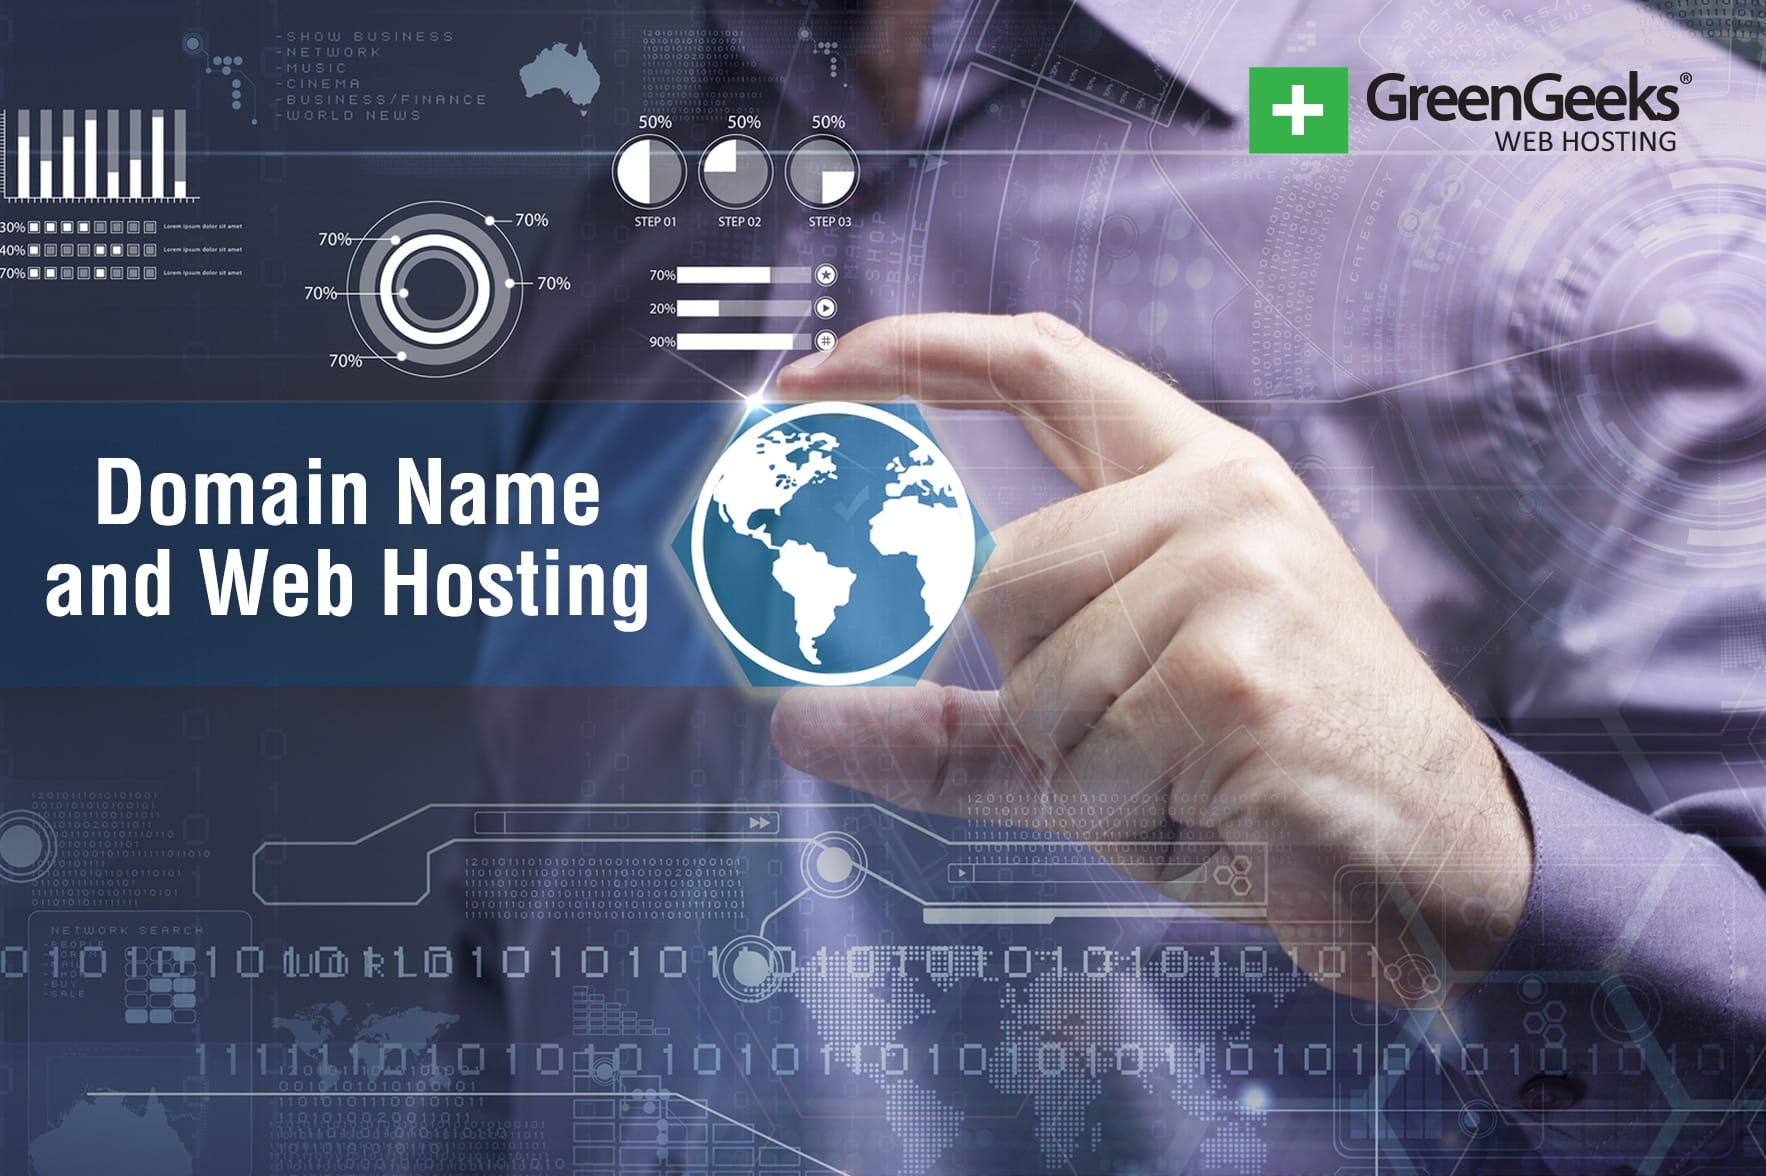 Domain Name and Web Hosting